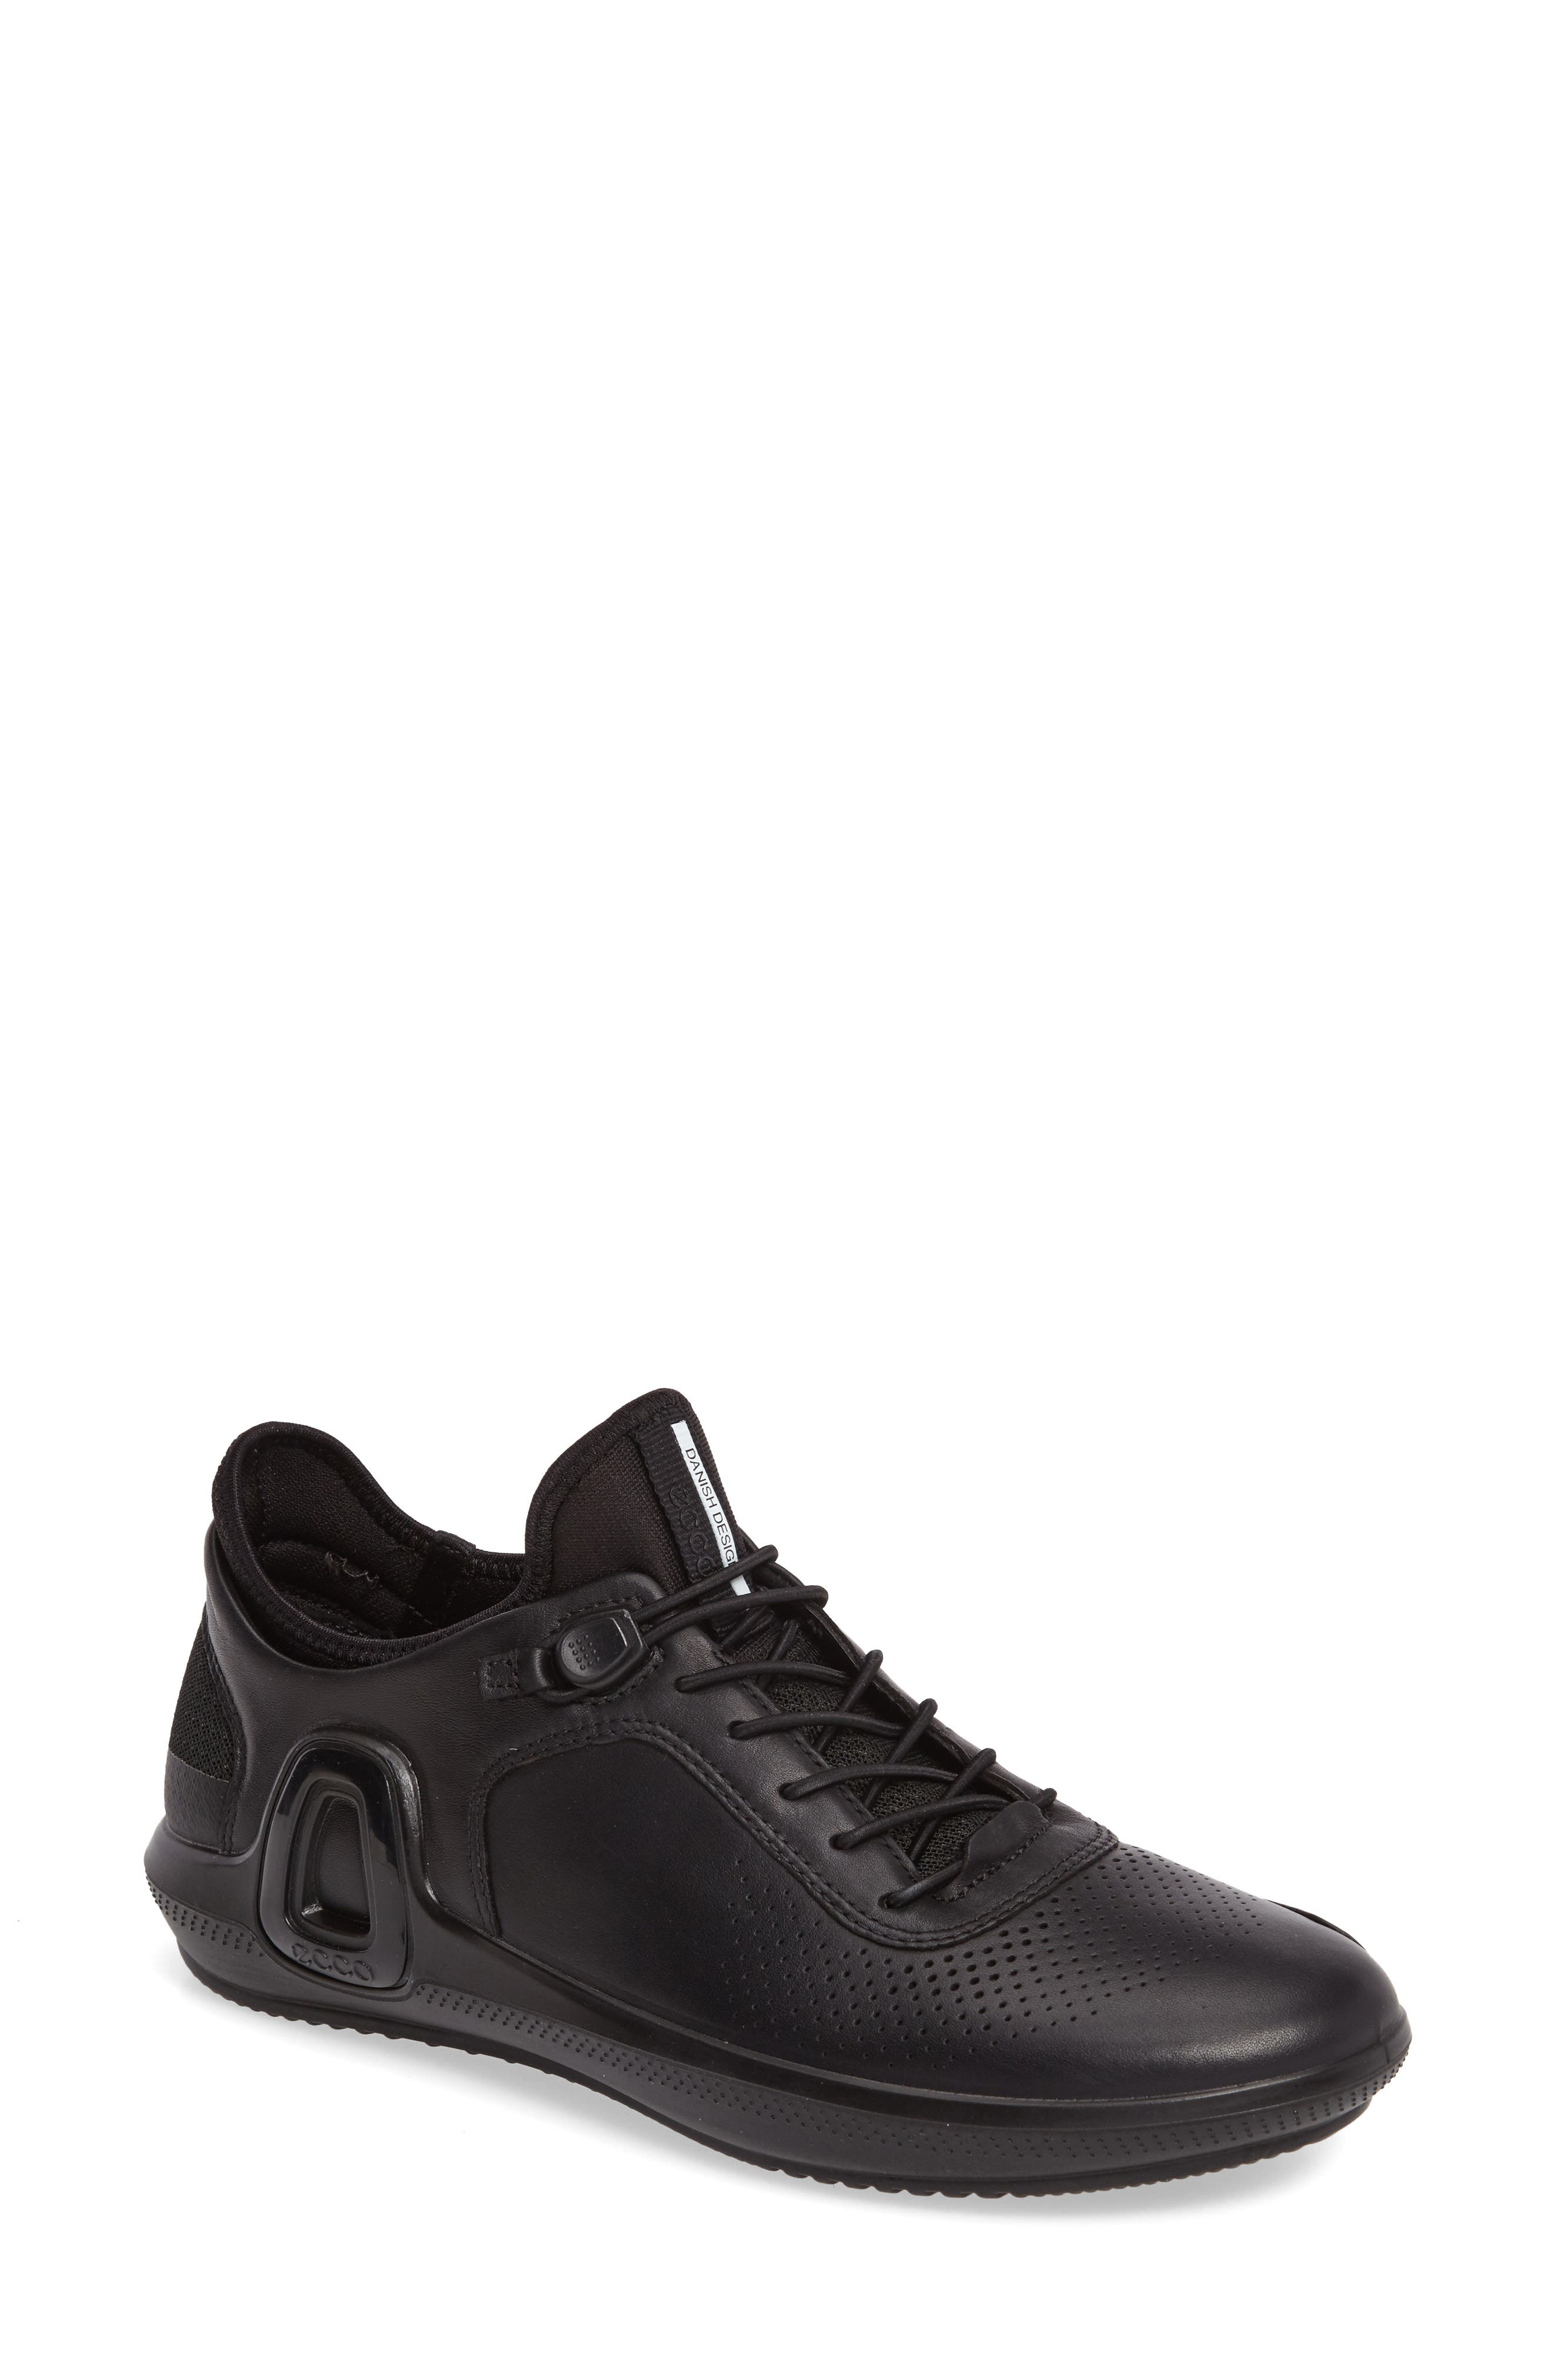 Alternate Image 1 Selected - ECCO Intrinsic 3 Sneaker (Women)